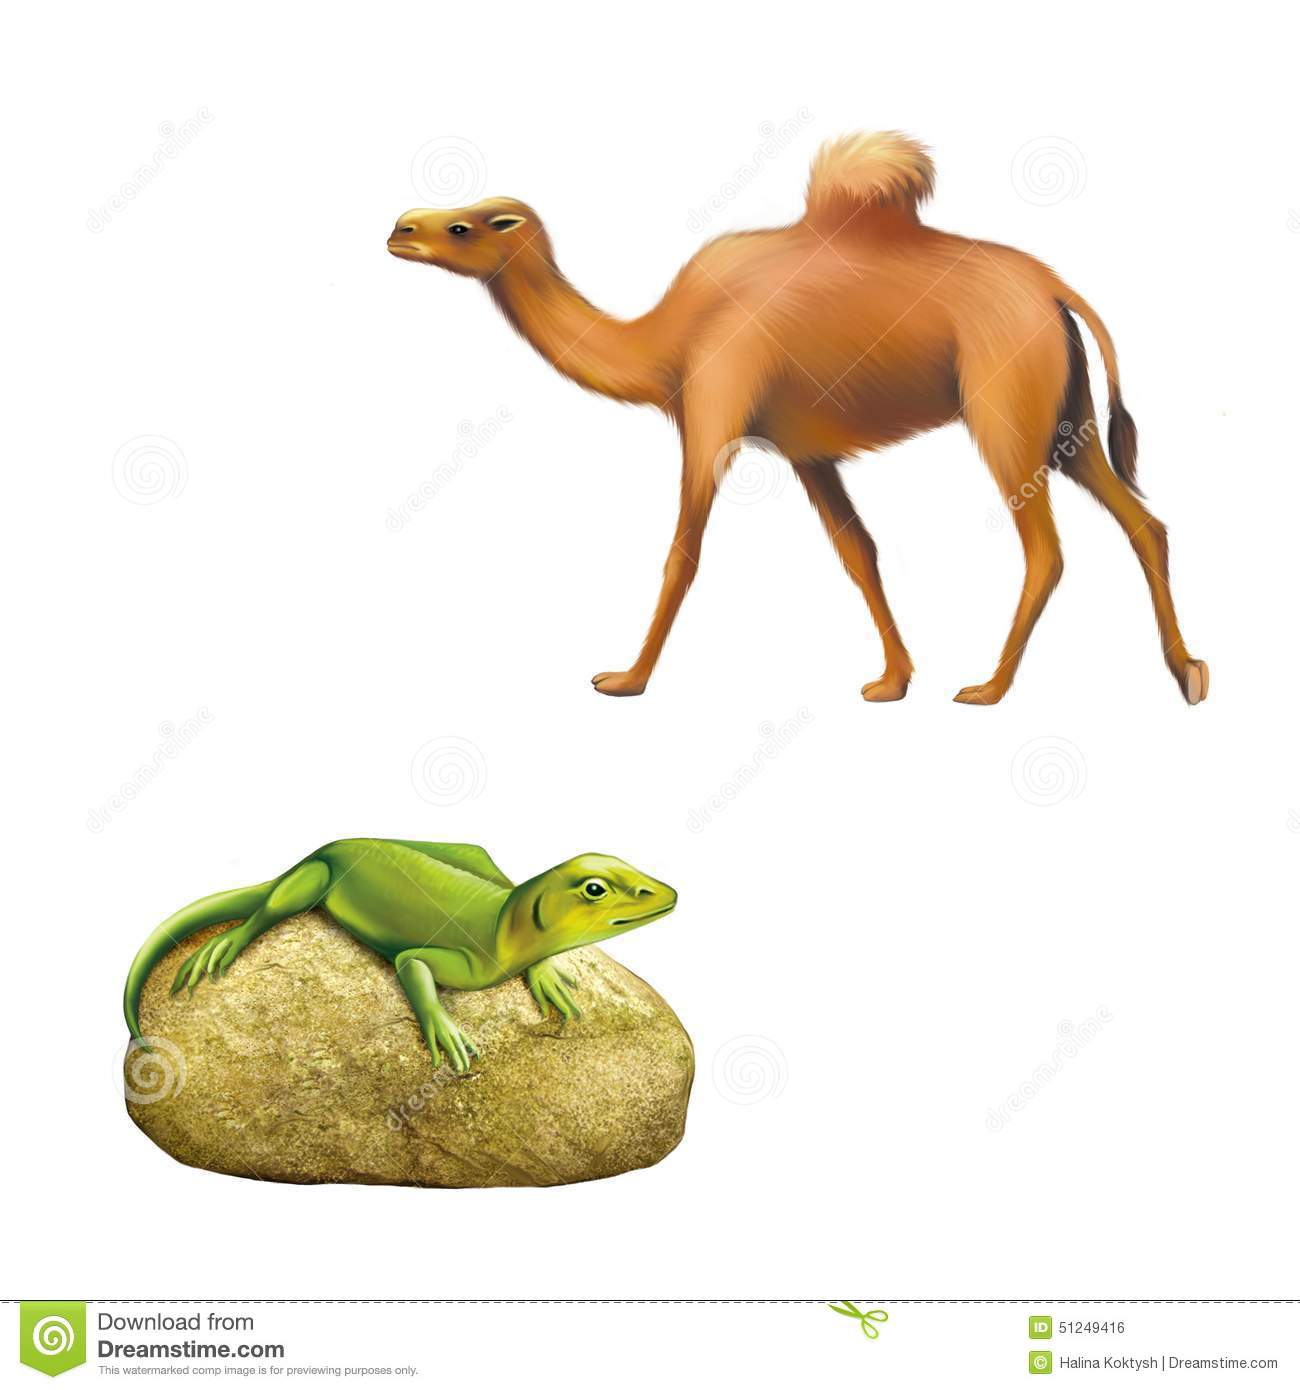 Lizard On Rock Clipart Clipground Paper Scissors Spock Spiderman Batman Wizard Glock We The Domestic Camel Walking Green Sitting Stock